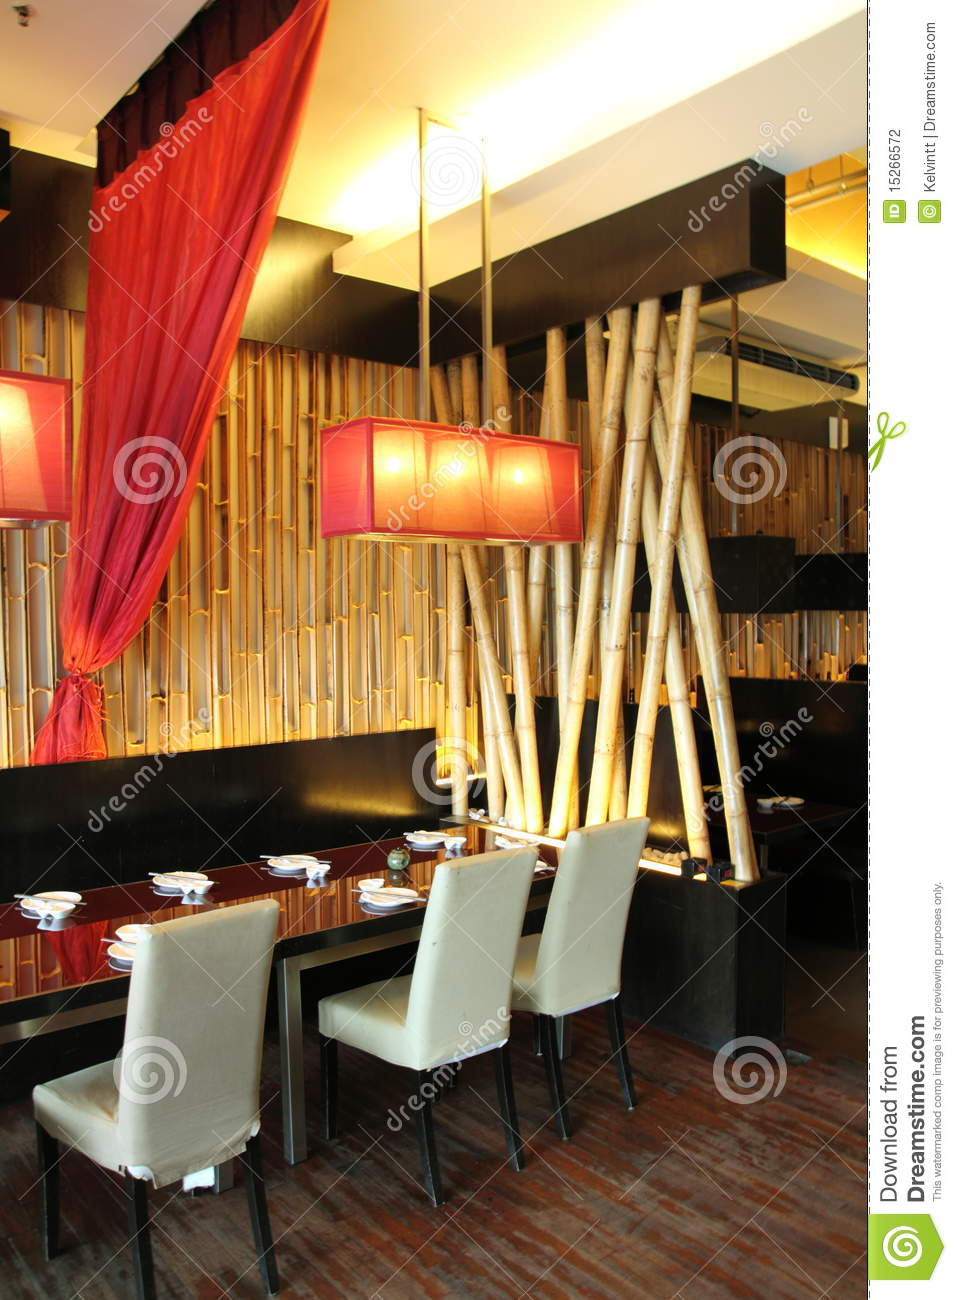 Restaurant Interior Design Stock Photography Image 15266572 : restaurant interior design 15266572 from www.dreamstime.com size 957 x 1300 jpeg 153kB